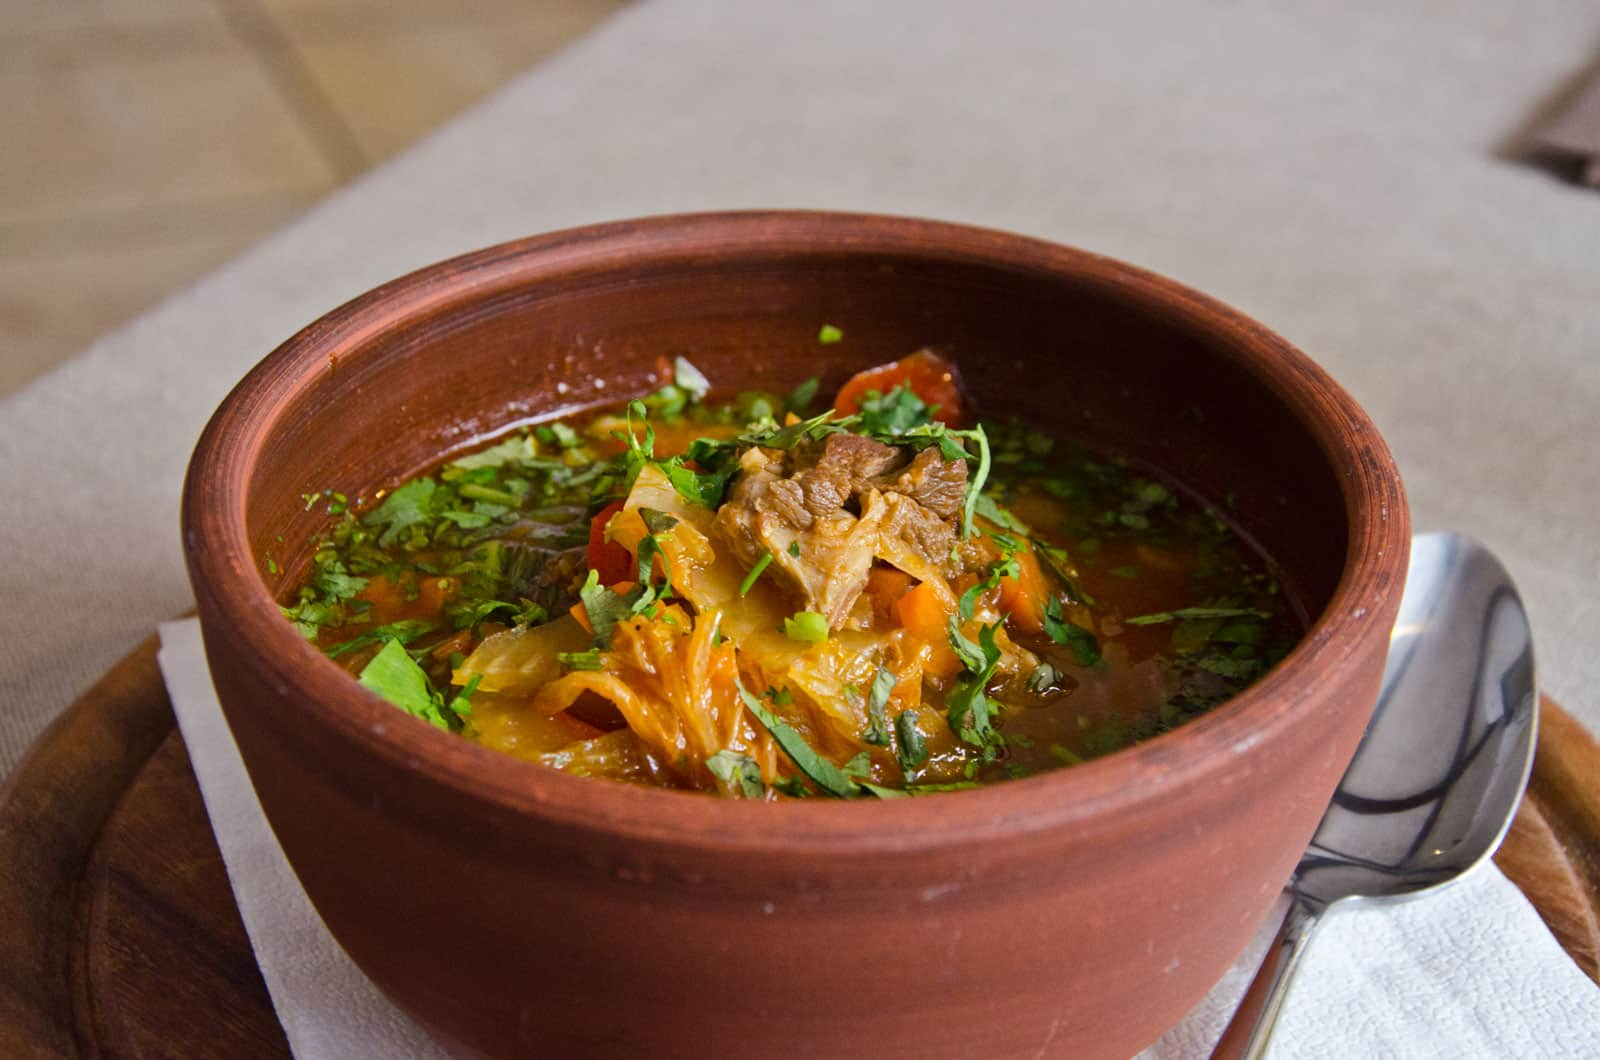 Lagman: One of the national soups of Uzbekistan